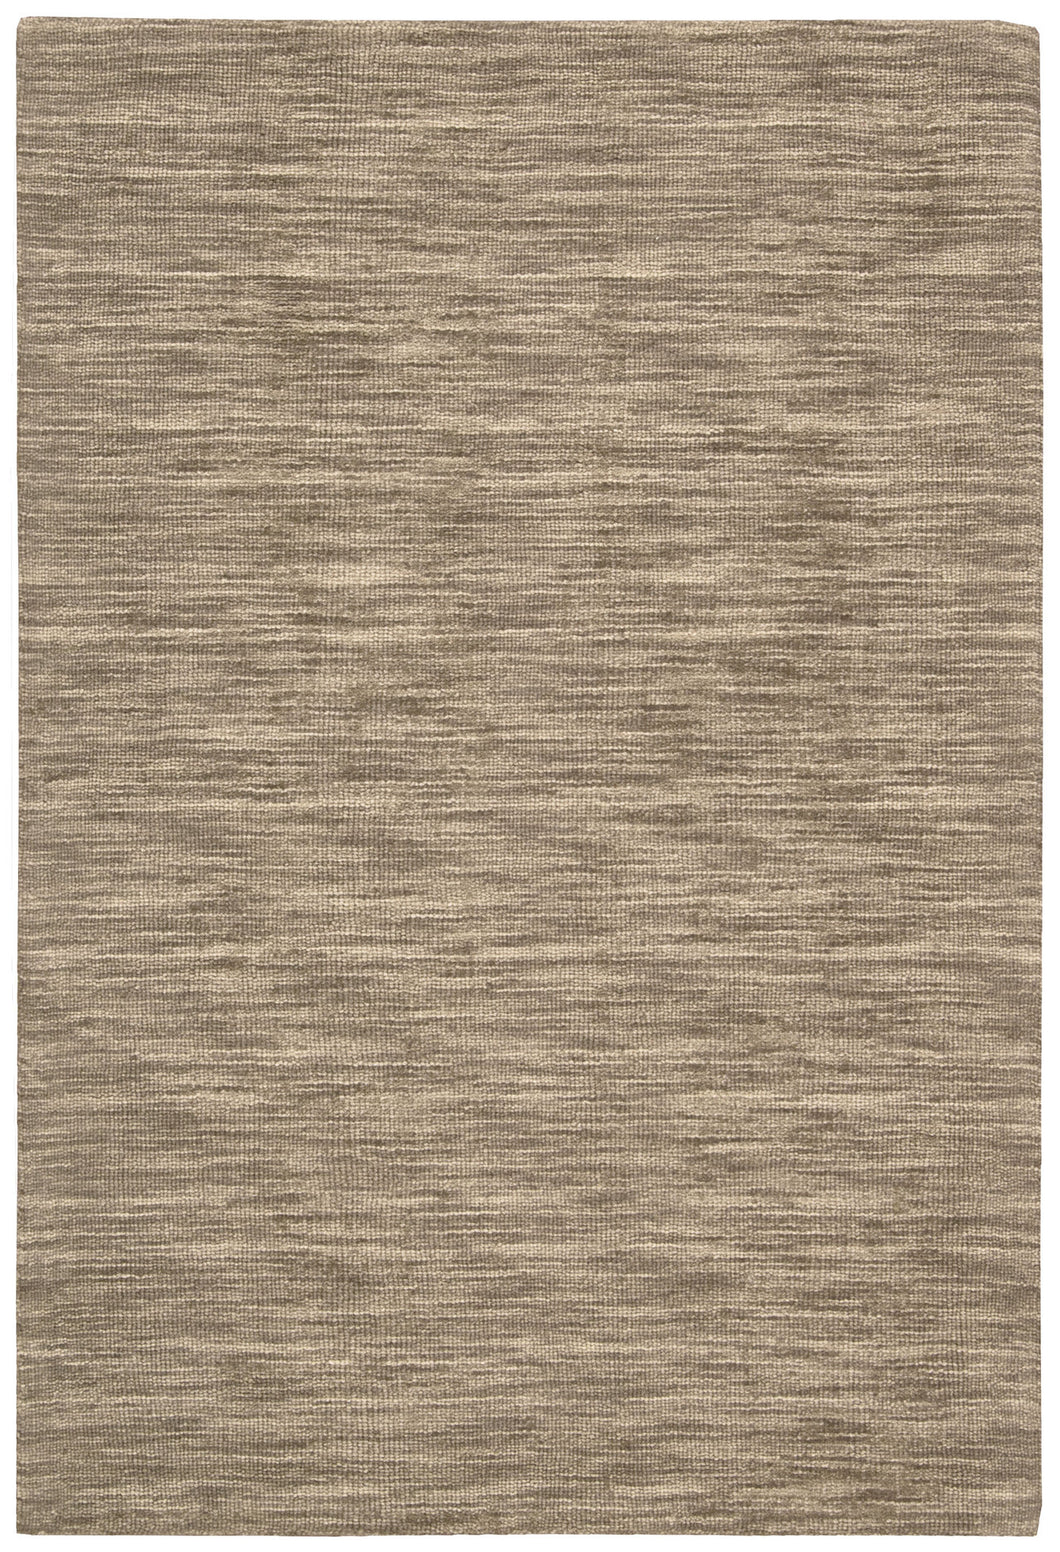 Waverly Grand Suite Stone Area Rug By Nourison WGS01 STONE